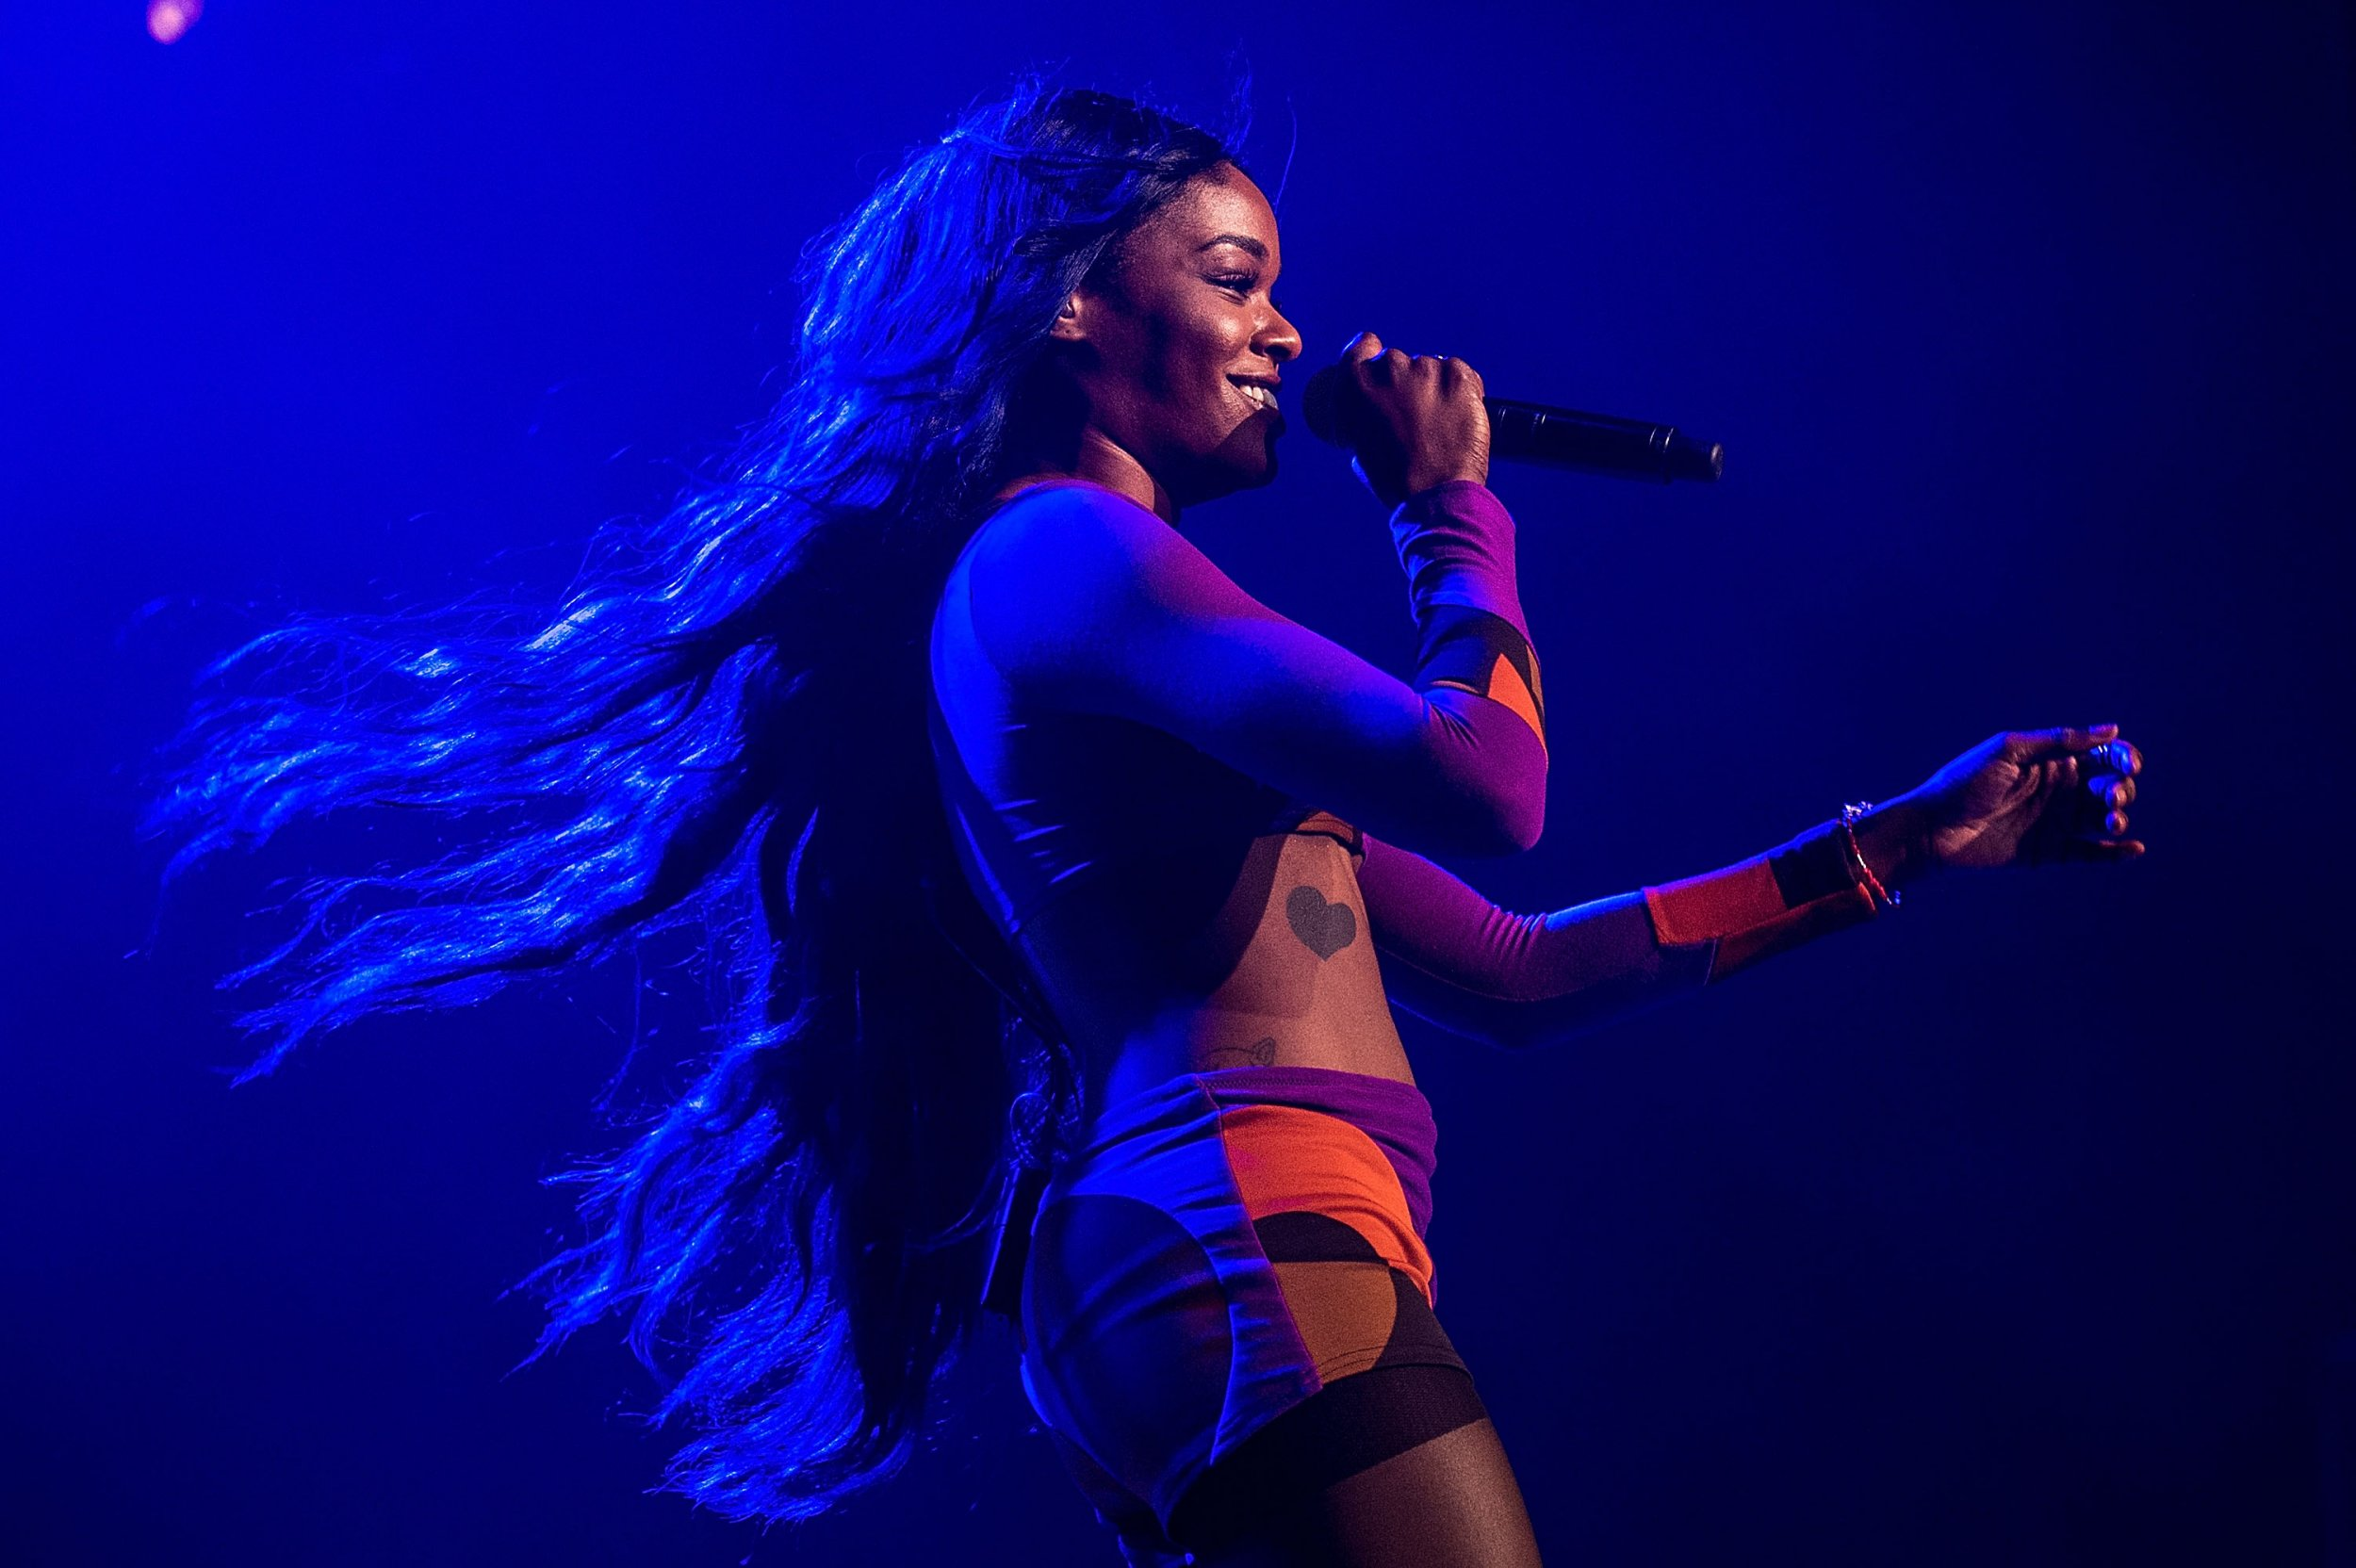 Azealia Banks, Elon Musk and Grimes' Drama Explained